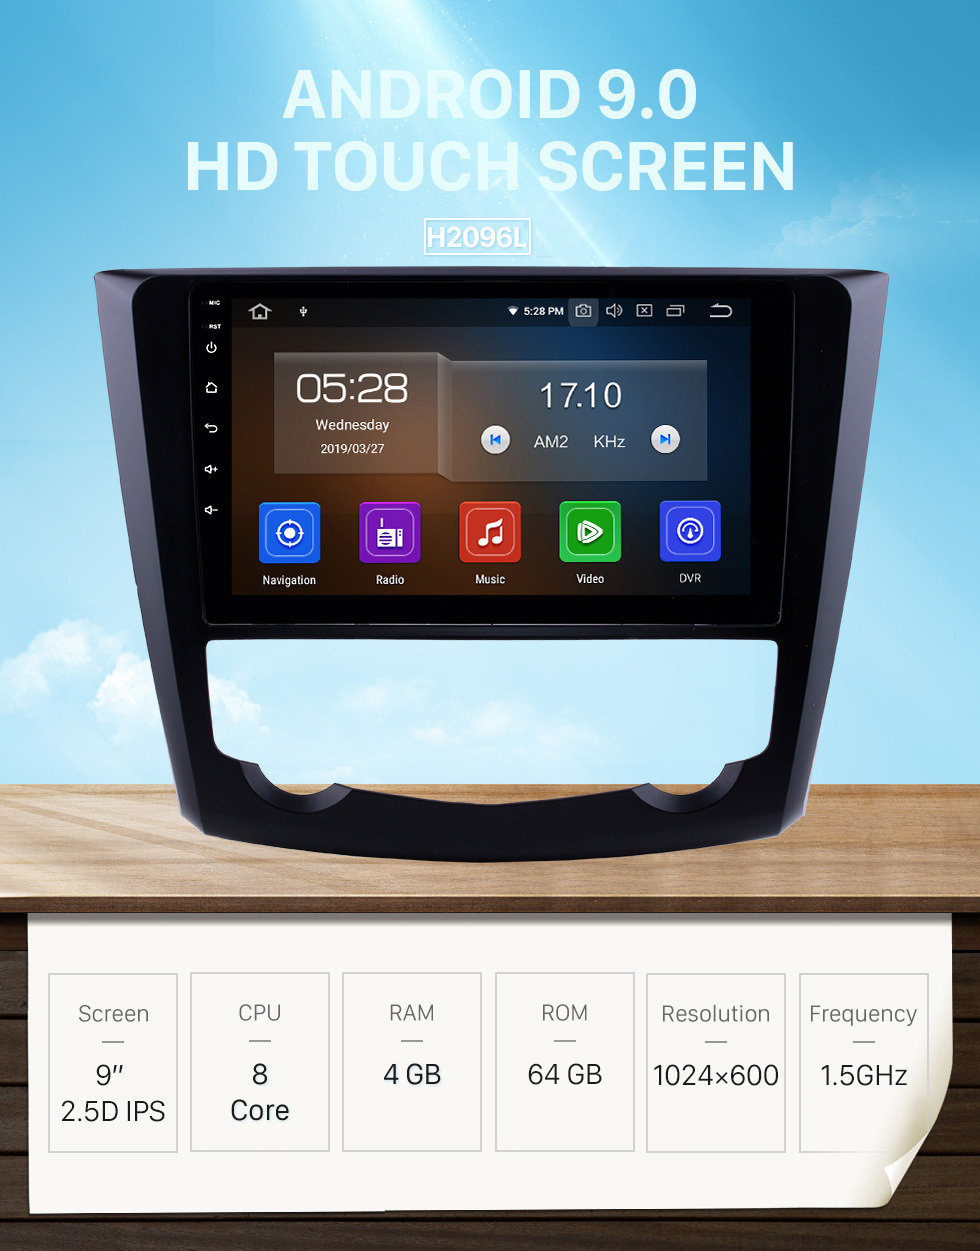 Seicane 9 inch Android 9.0 HD Touch Screen Car Stereo Radio Head Unit for 2016-2017 Renault Kadjar Bluetooth Radio WIFI DVR Video USB Mirror link OBD2 Rearview camera Steering Wheel Control